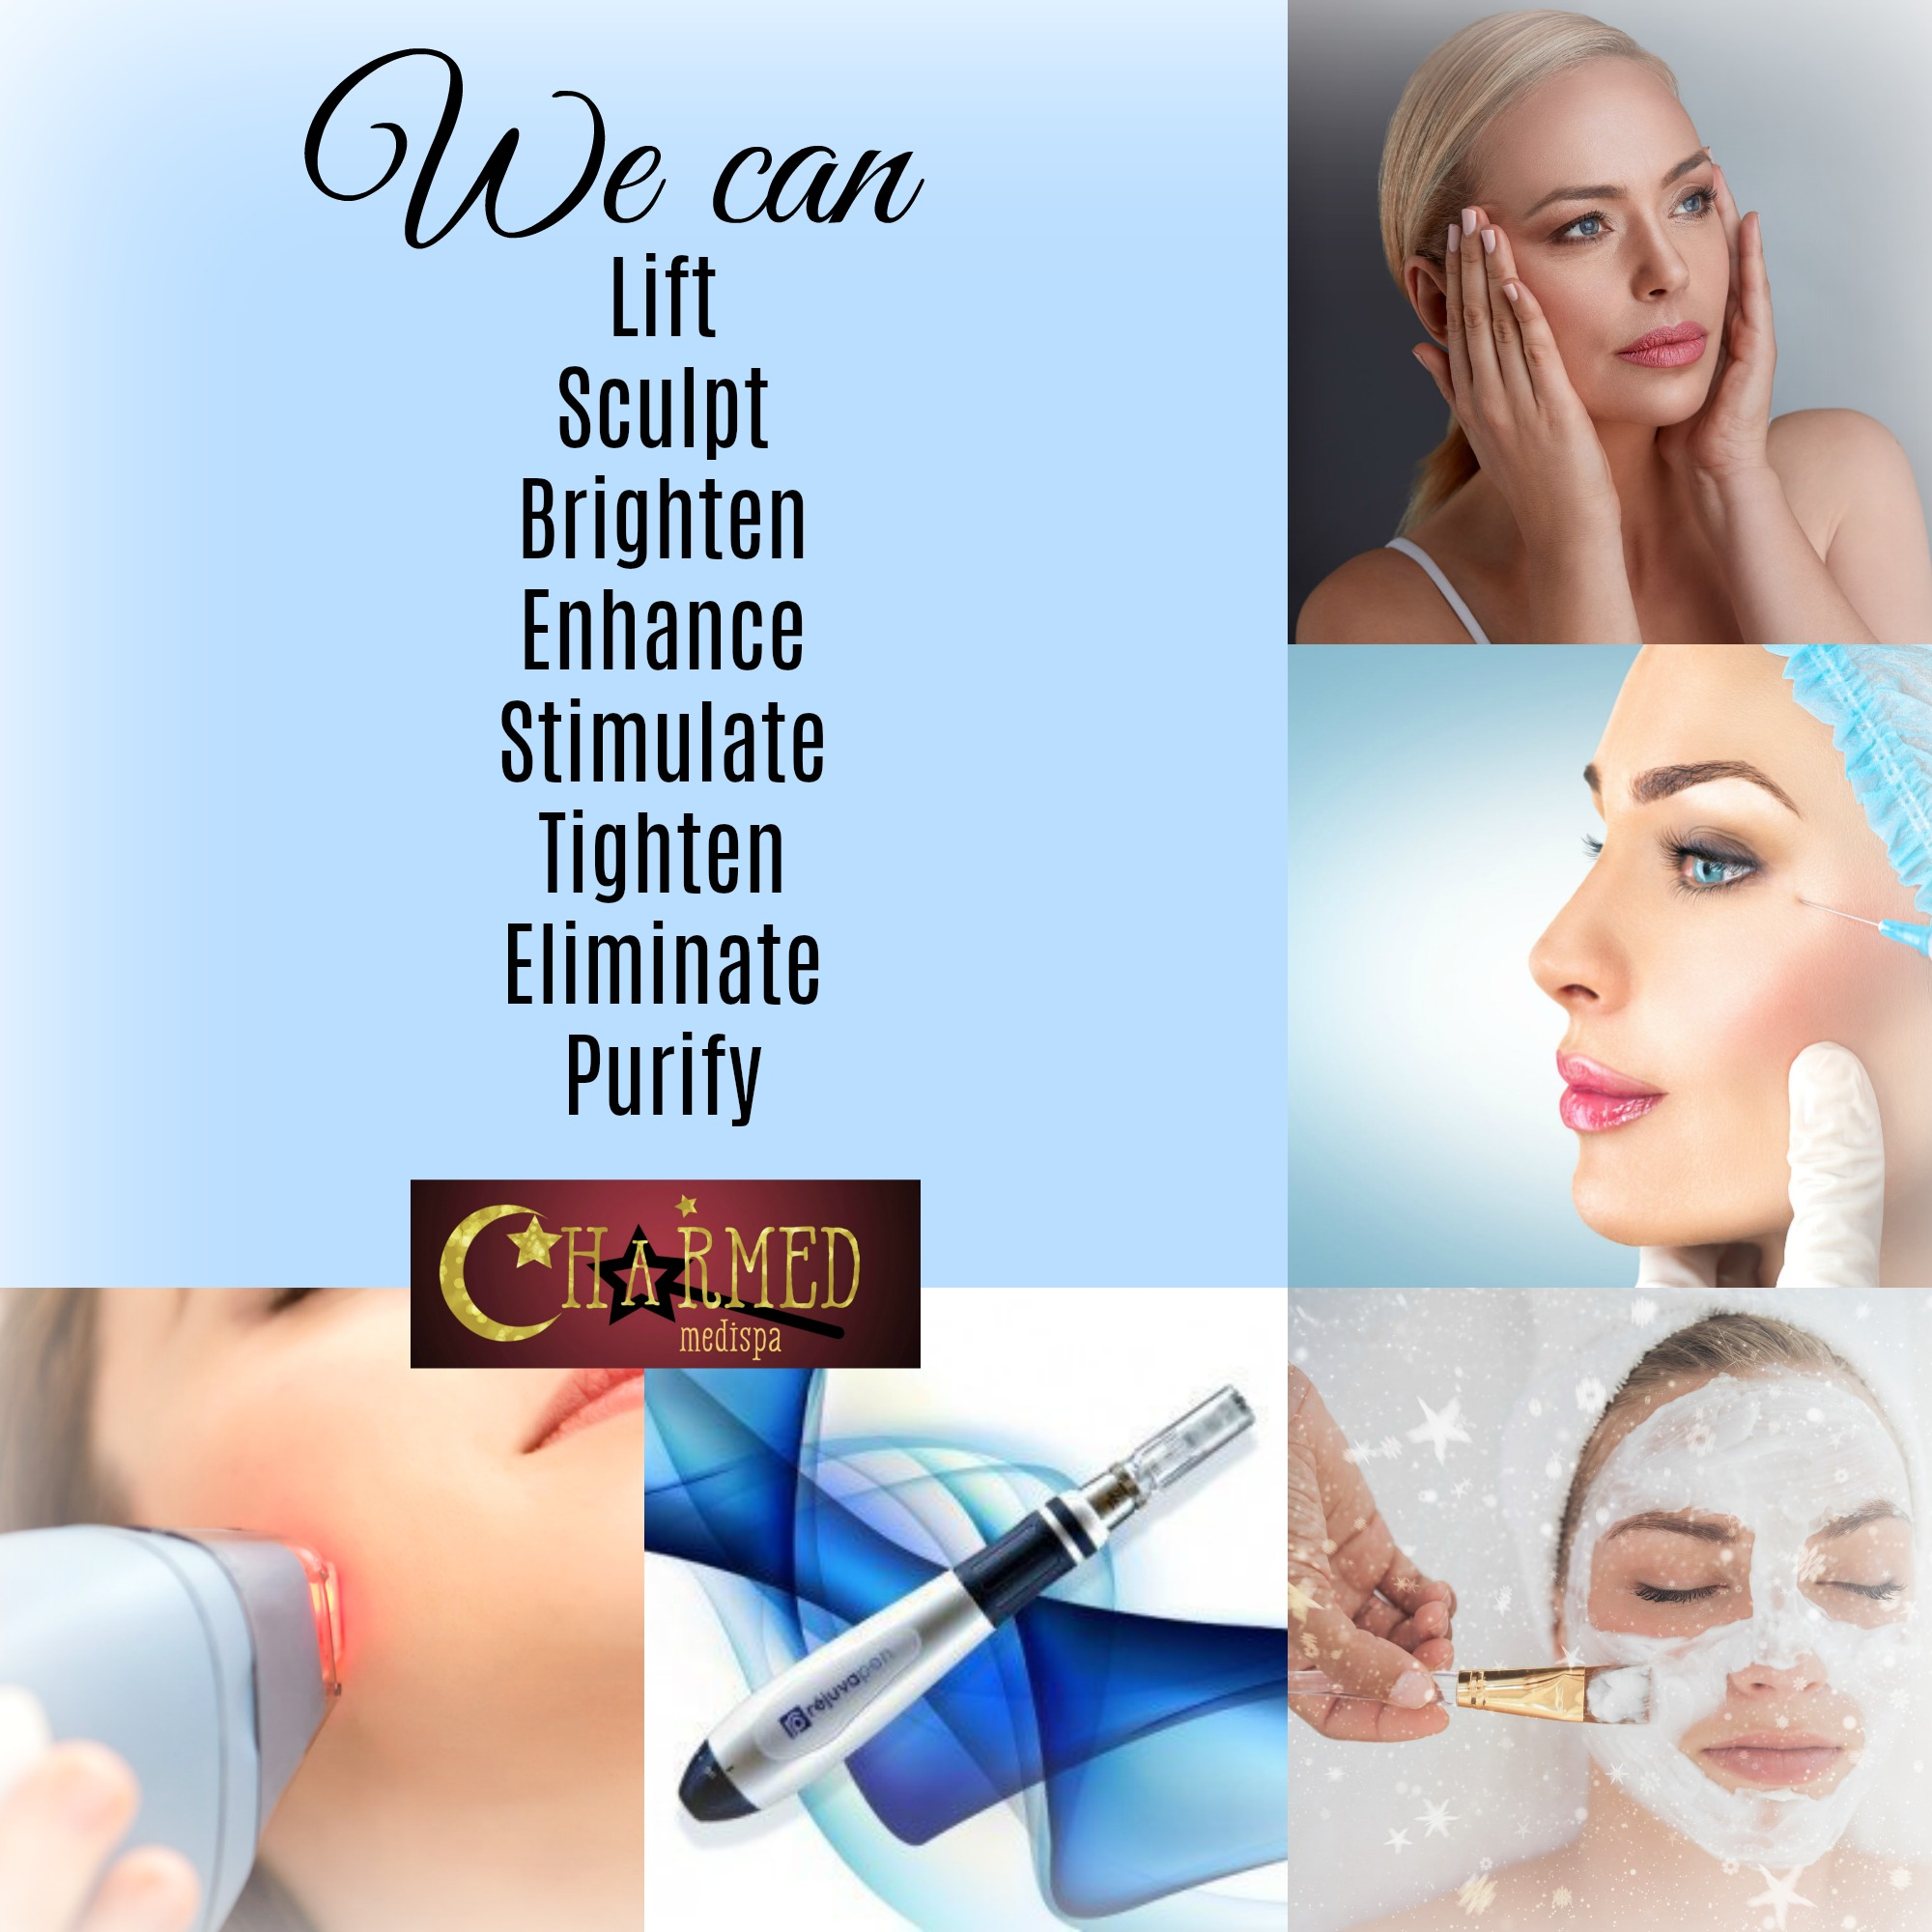 Botox Filler Lasers Sculptra Facials Delaware Medical Spa